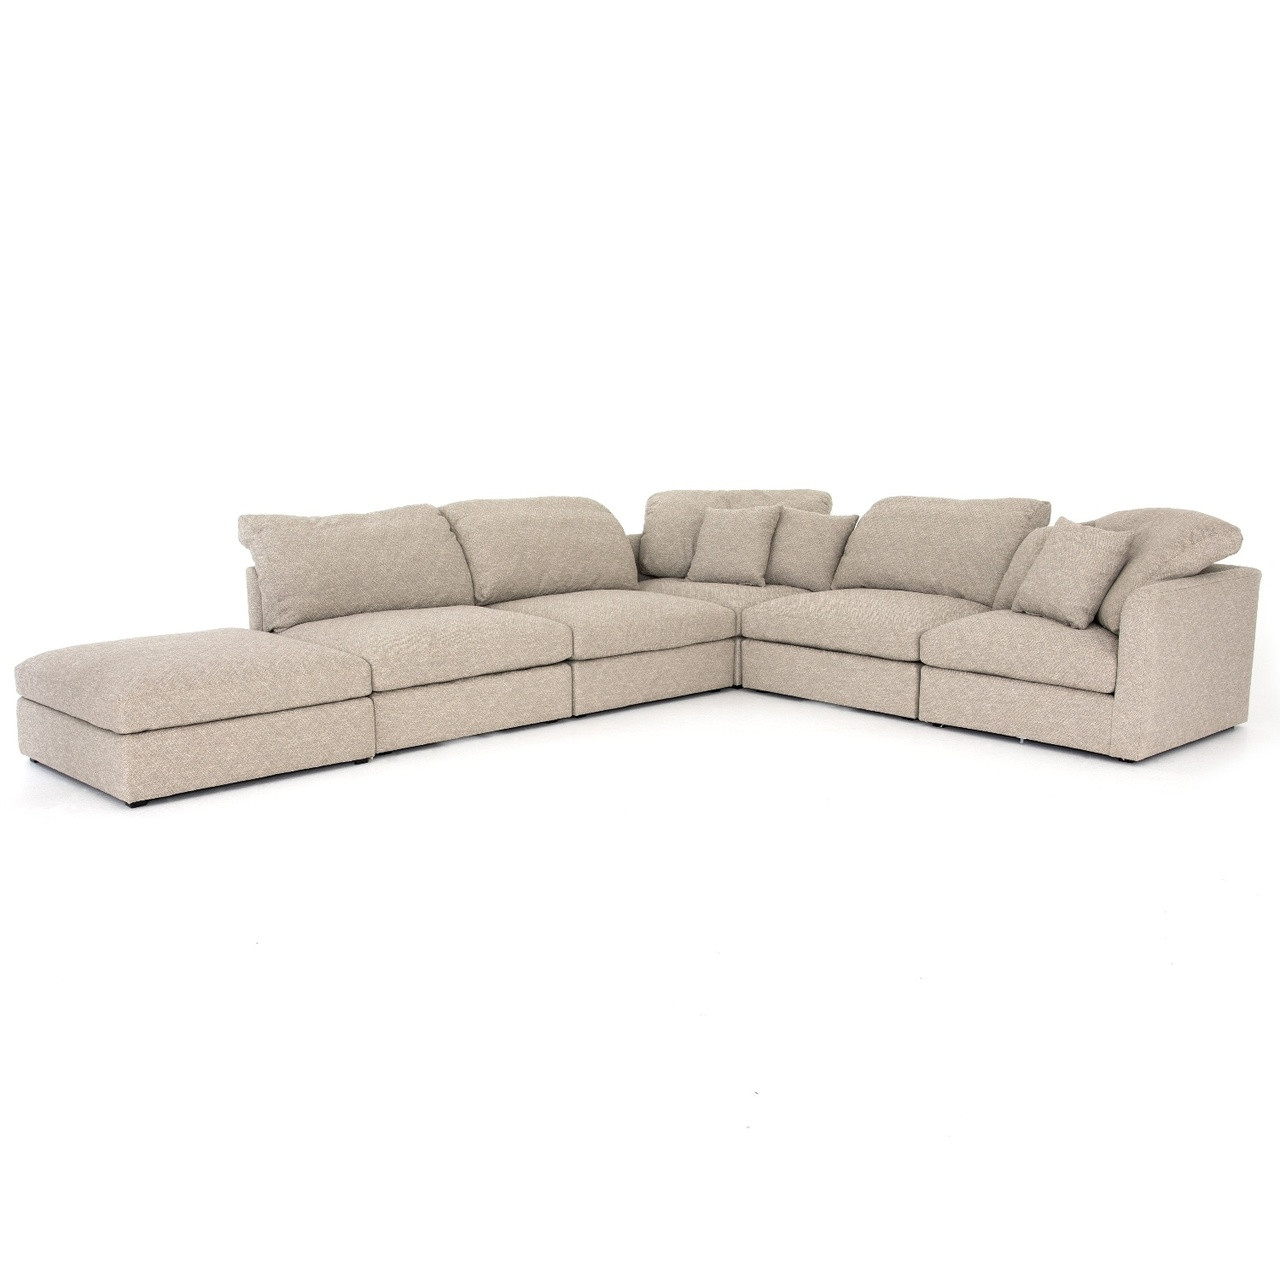 6 piece modular sectional sofa bed malaysia online ingrid natural upholstered pc zin home